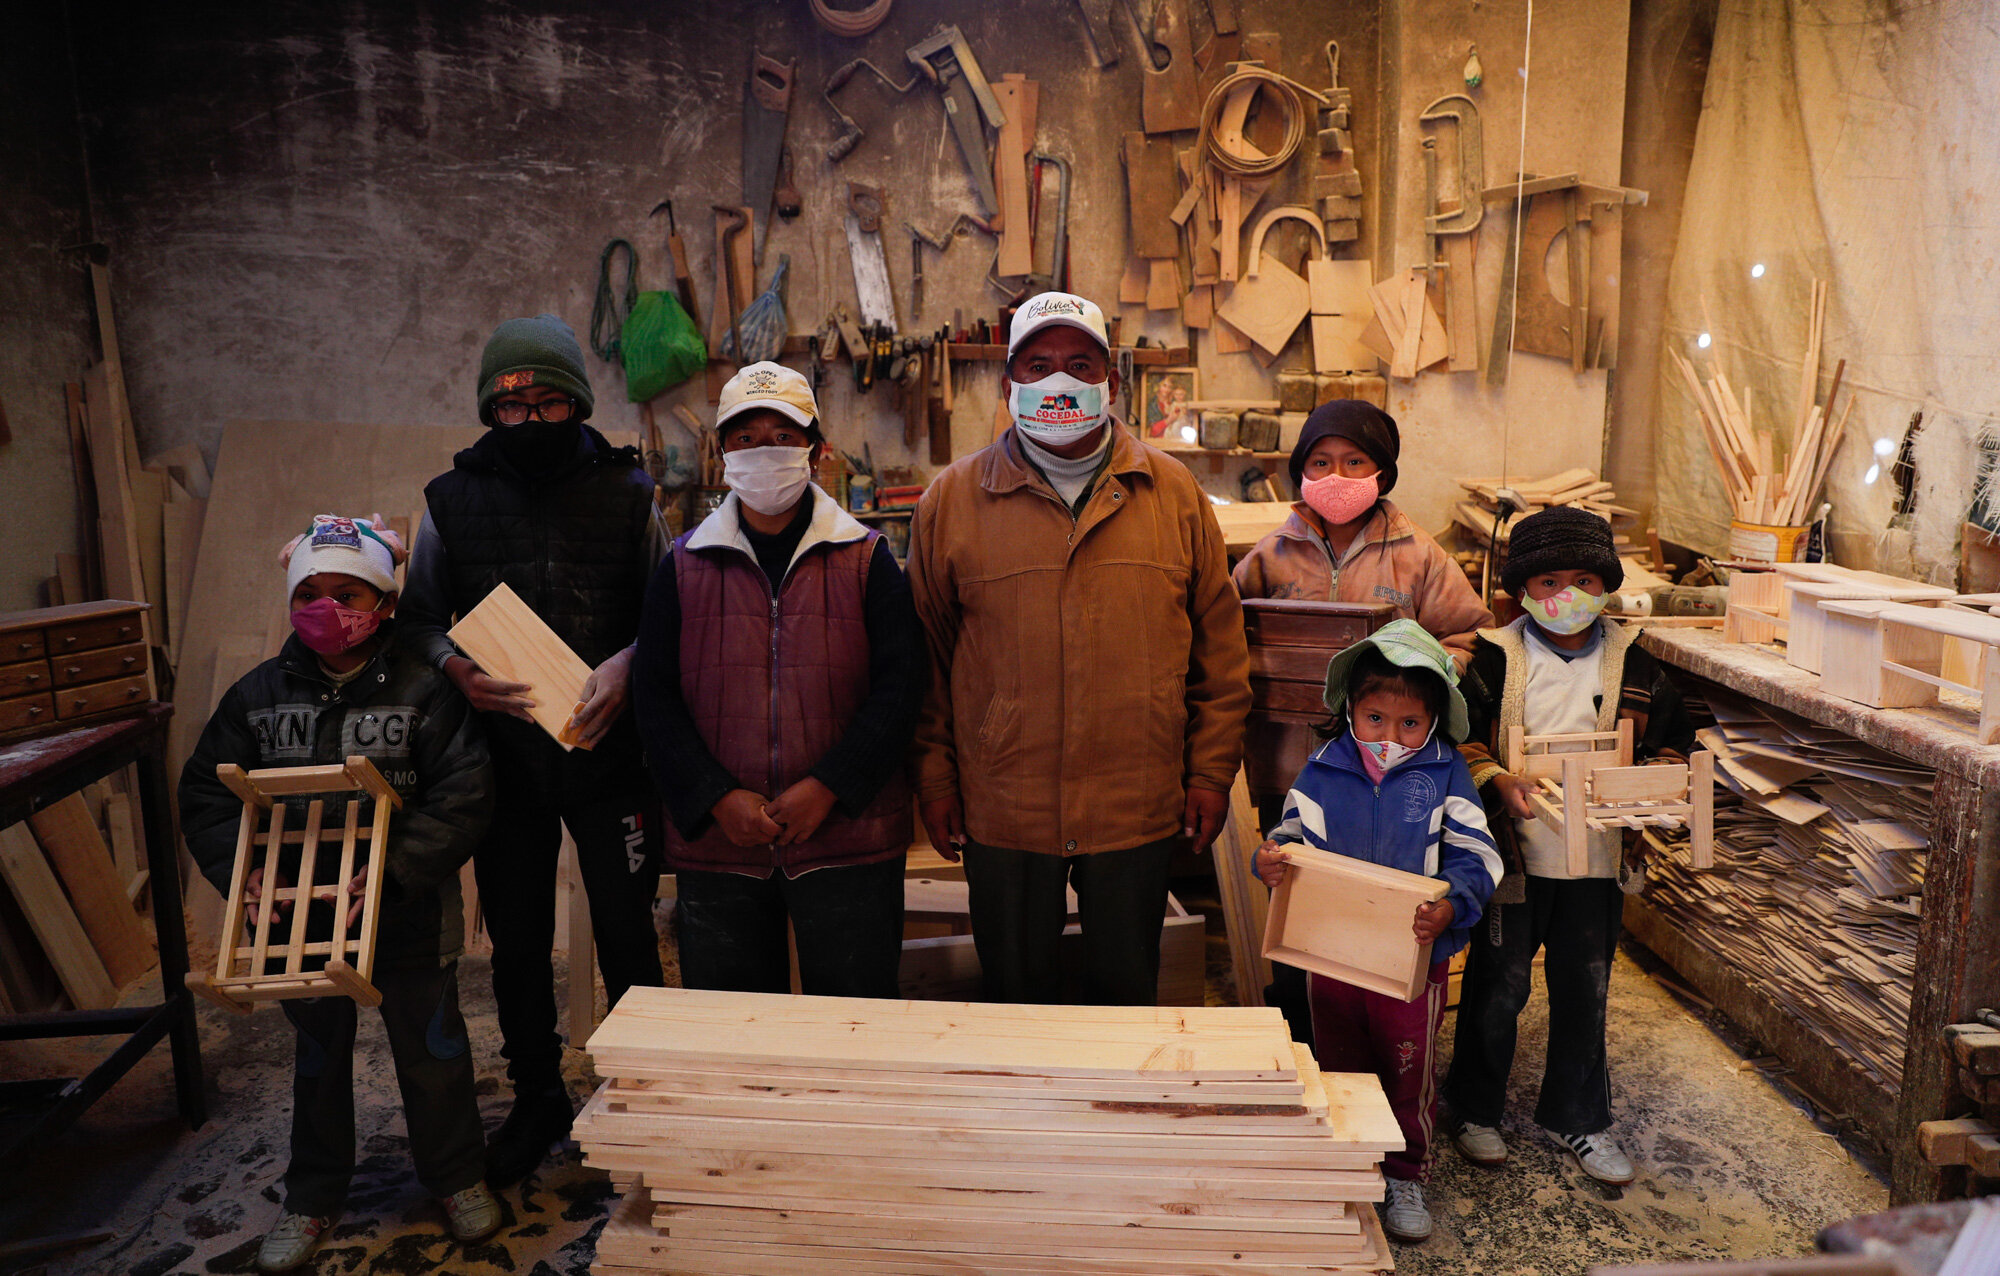 Wearing masks to curb the spread of the coronavirus, the Delgado family poses for a photo in their workshop in El Alto, Bolivia, on Aug. 28, 2020. The five children, from ages 6 and 14, work all day in the family's small carpentry workshop with their parents. (AP Photo/Juan Karita)